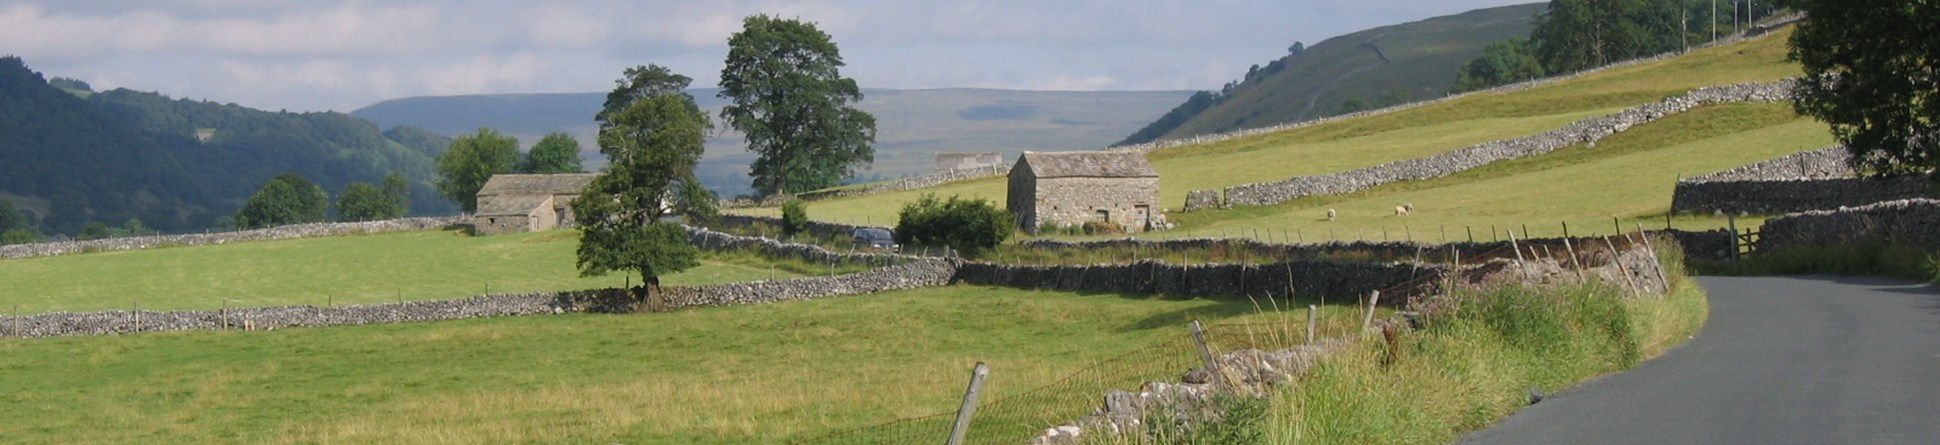 Country road leading to old farm buildings and Upper Wharfedale scenery